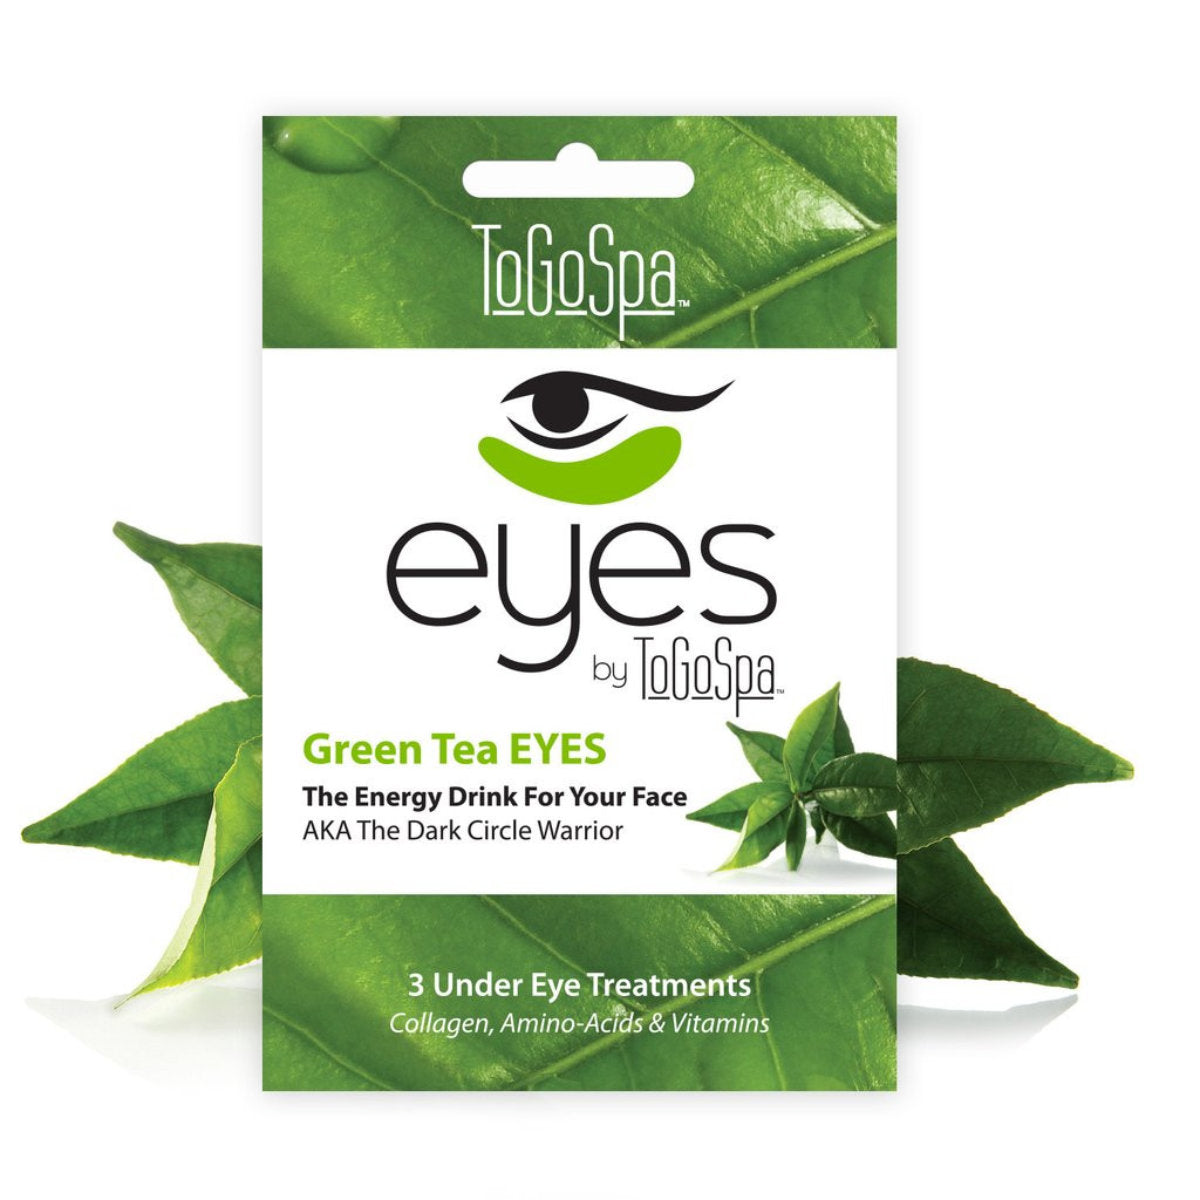 Green Tea EYES: AKA The Dark Circle Warrior